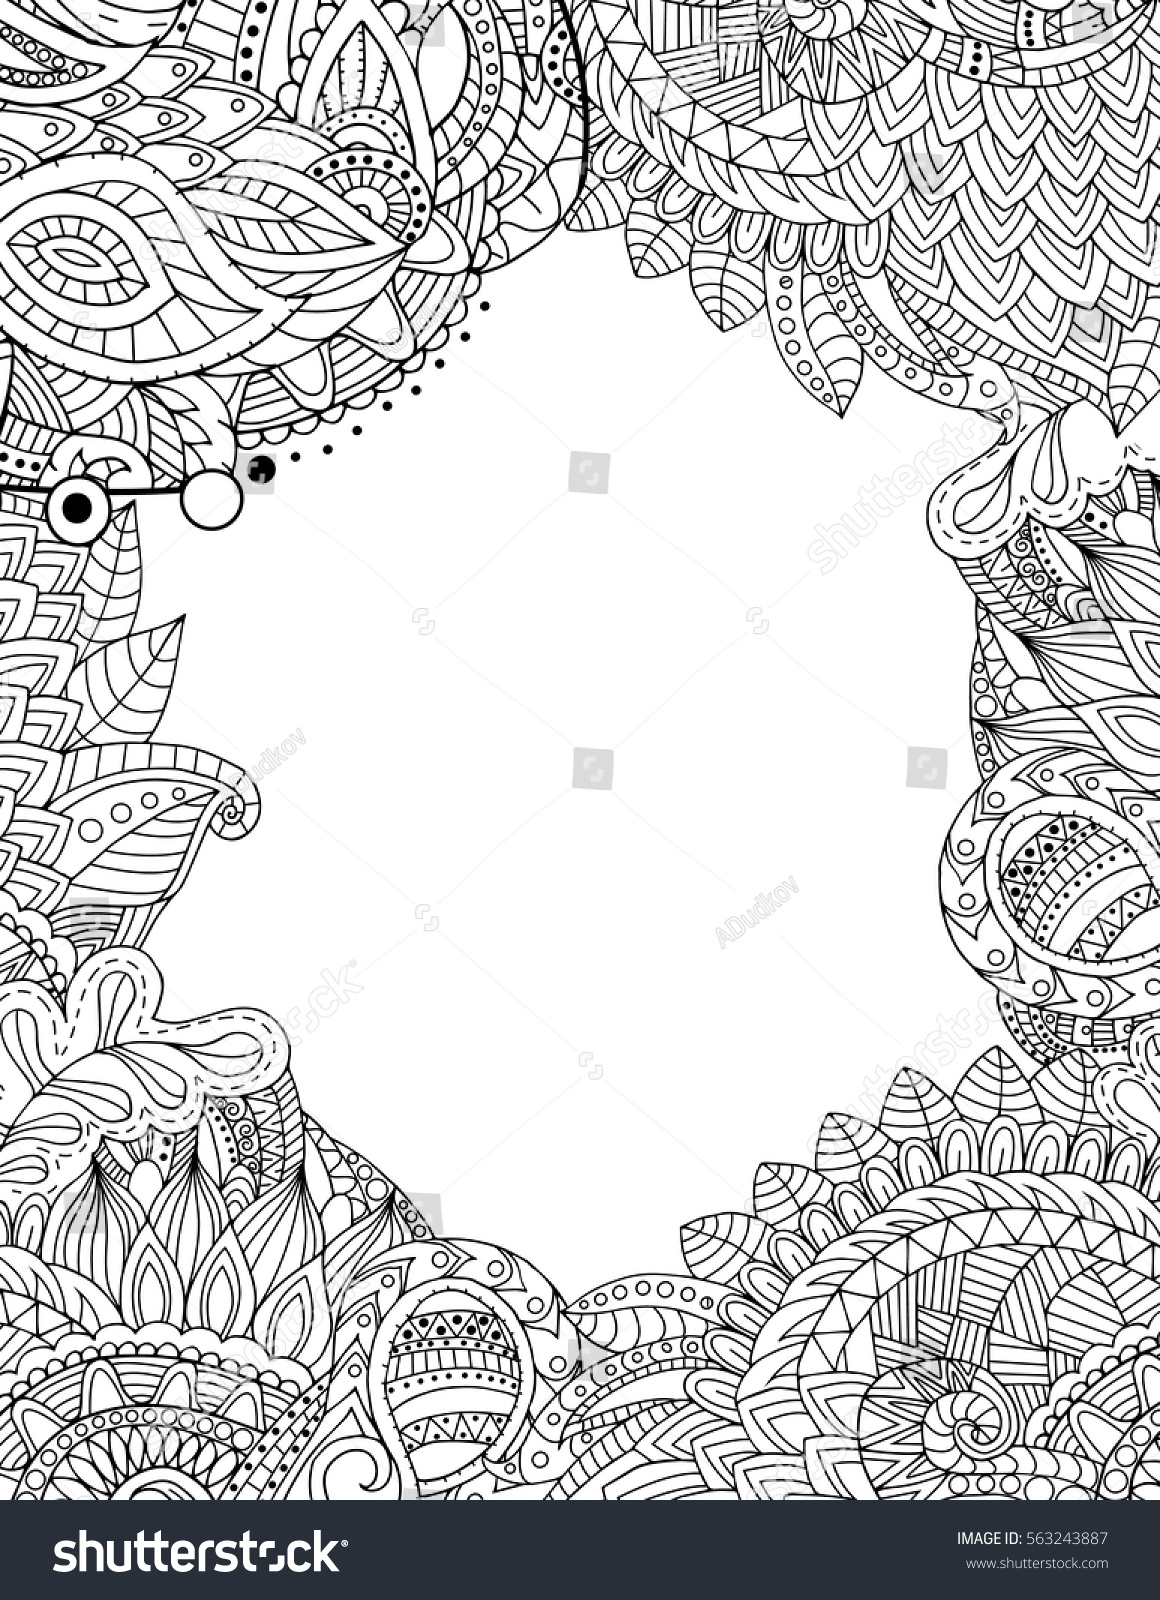 Postcard Template Zentangle Adult Coloring Book Stock Vector ...